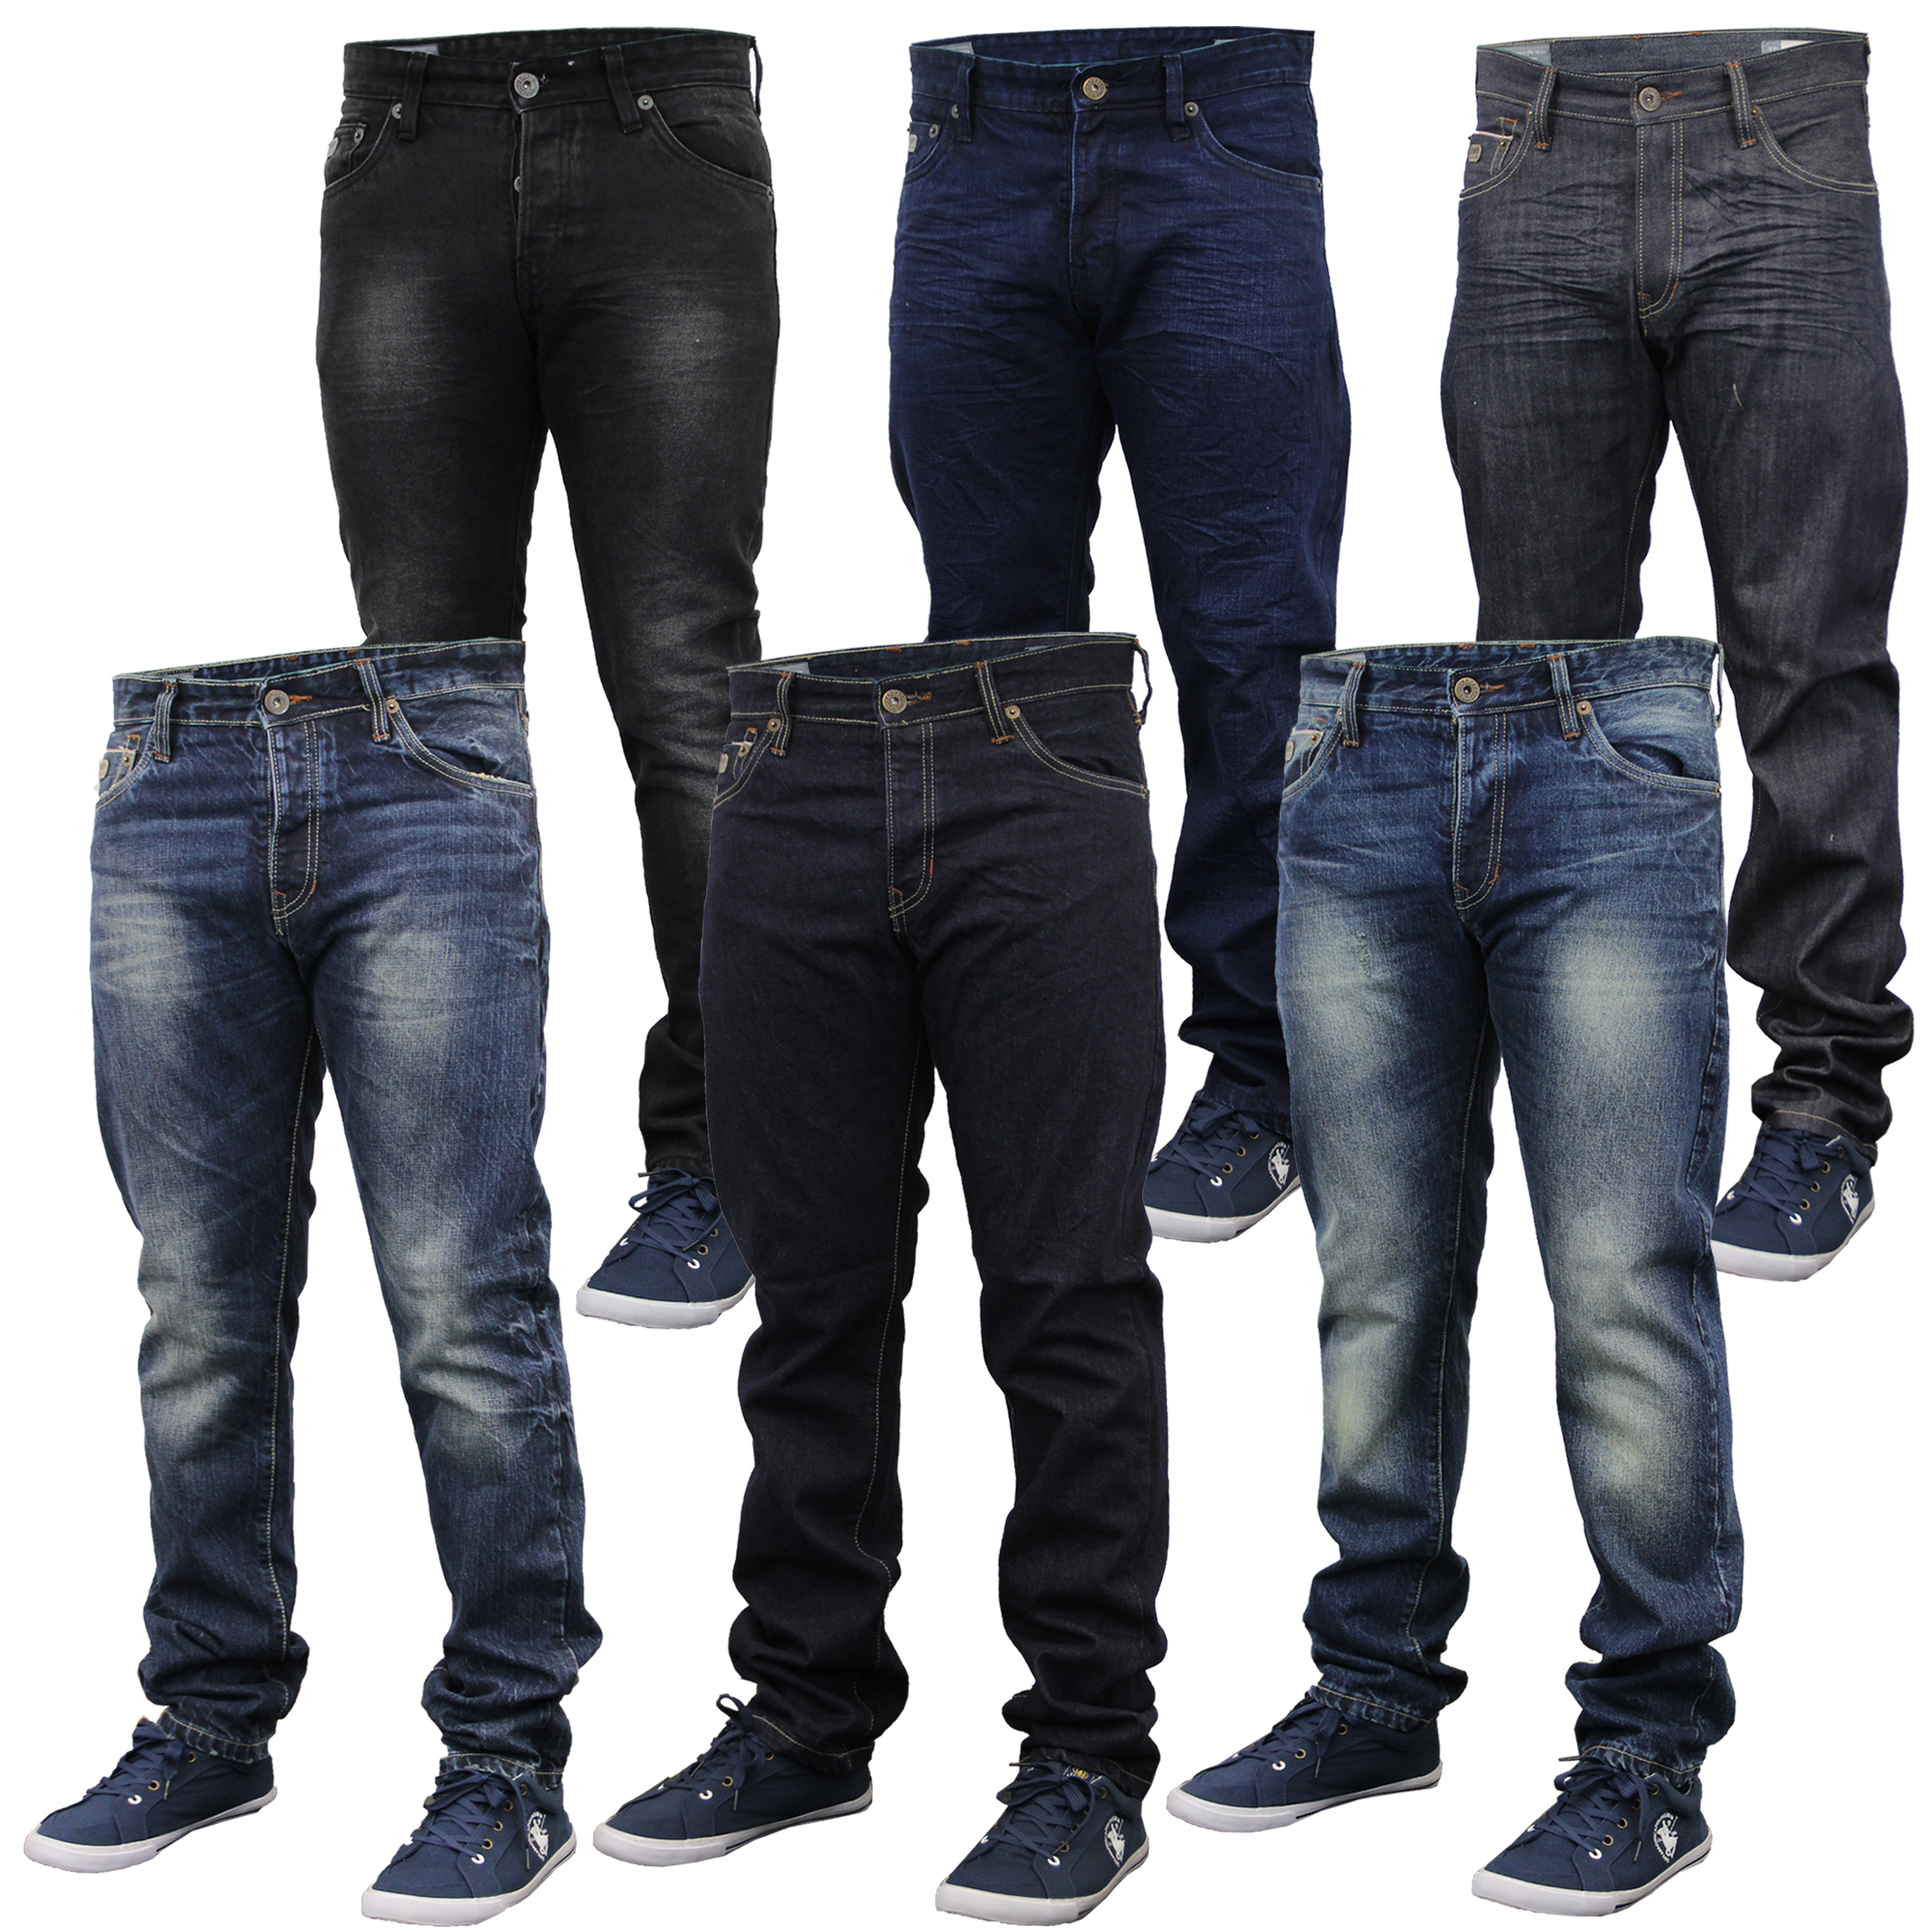 Mens Denim Jeans Emporio Seven Pants Faded Slim Fit Trousers Designer Bottoms Ebay